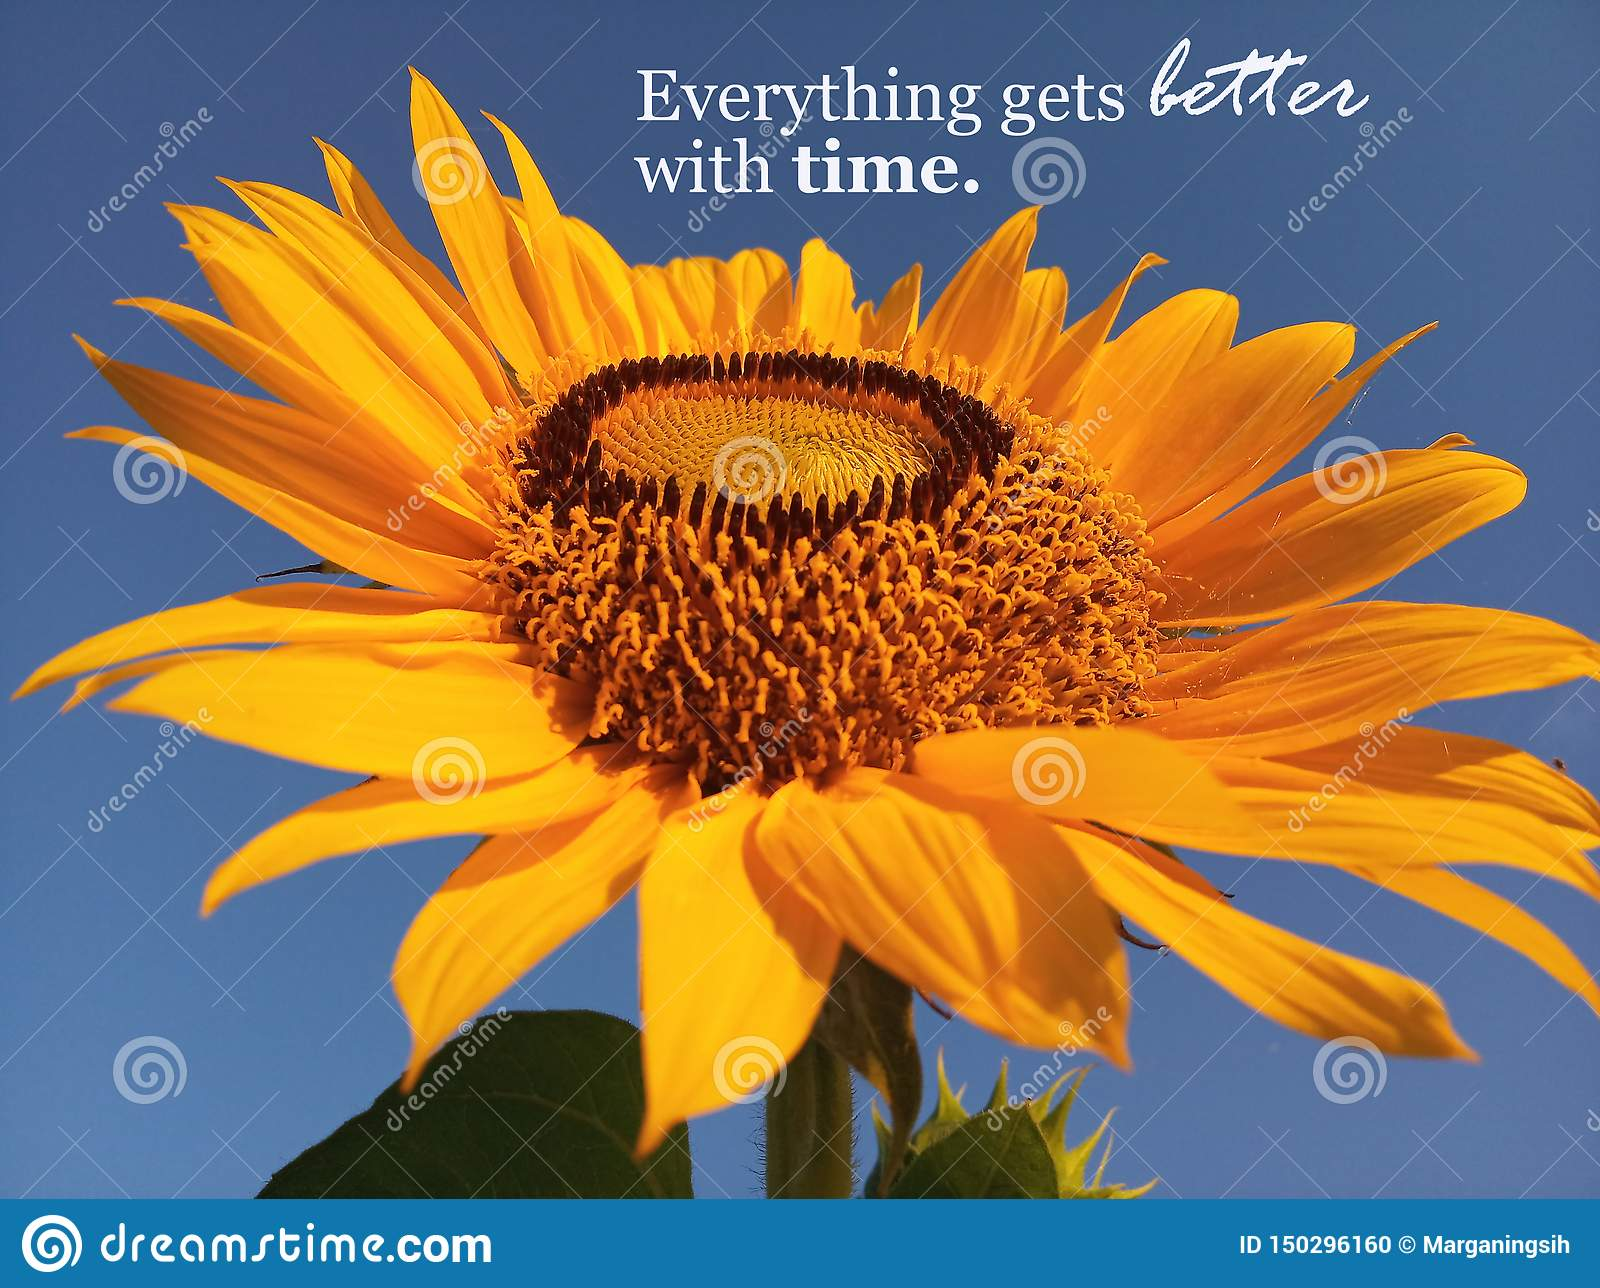 Inspirational Quote Everything Gets Better With Time With Beautiful Smiling Sunflower Blossom Closeup Blue Sky Background Stock Photo Image Of Week Sunflower 150296160